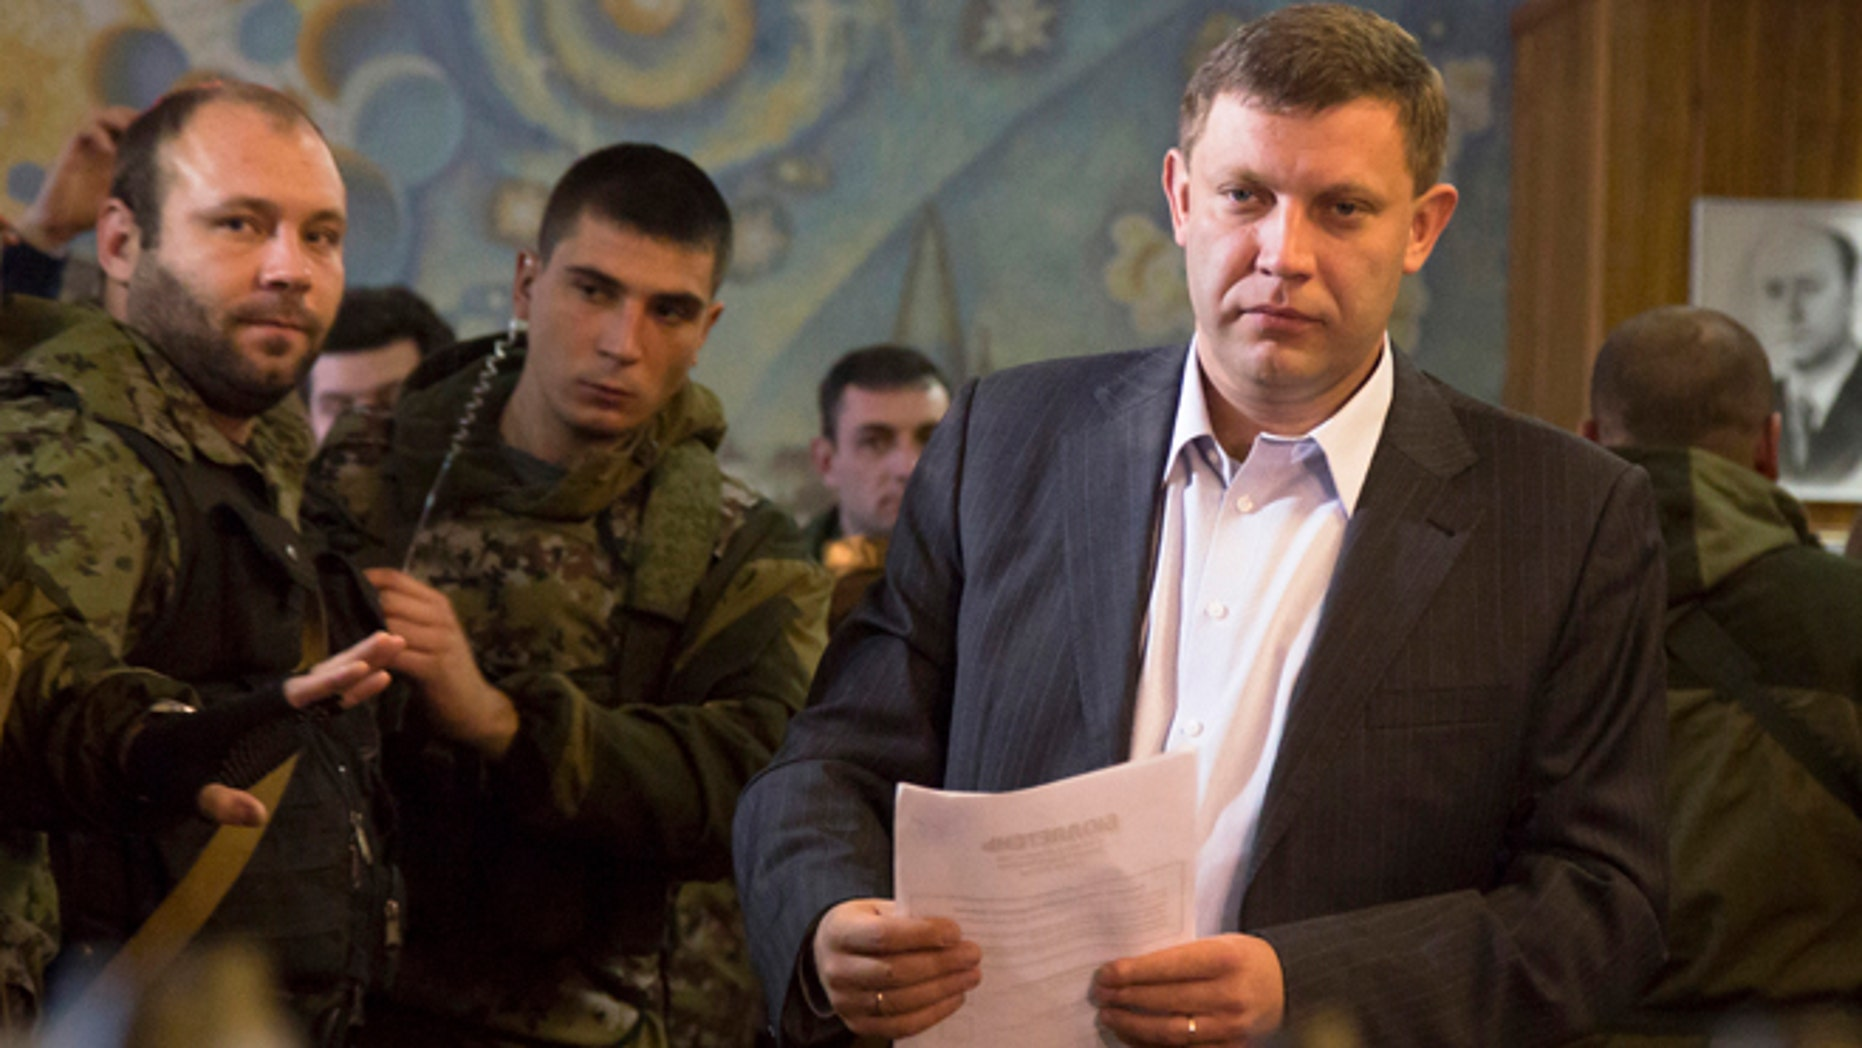 Nov. 2, 2014: Pro-Russian rebel leader Alexander Zakharchenko prepares to casts his ballot during supreme council and presidential elections in the city of Donetsk, eastern Ukraine.